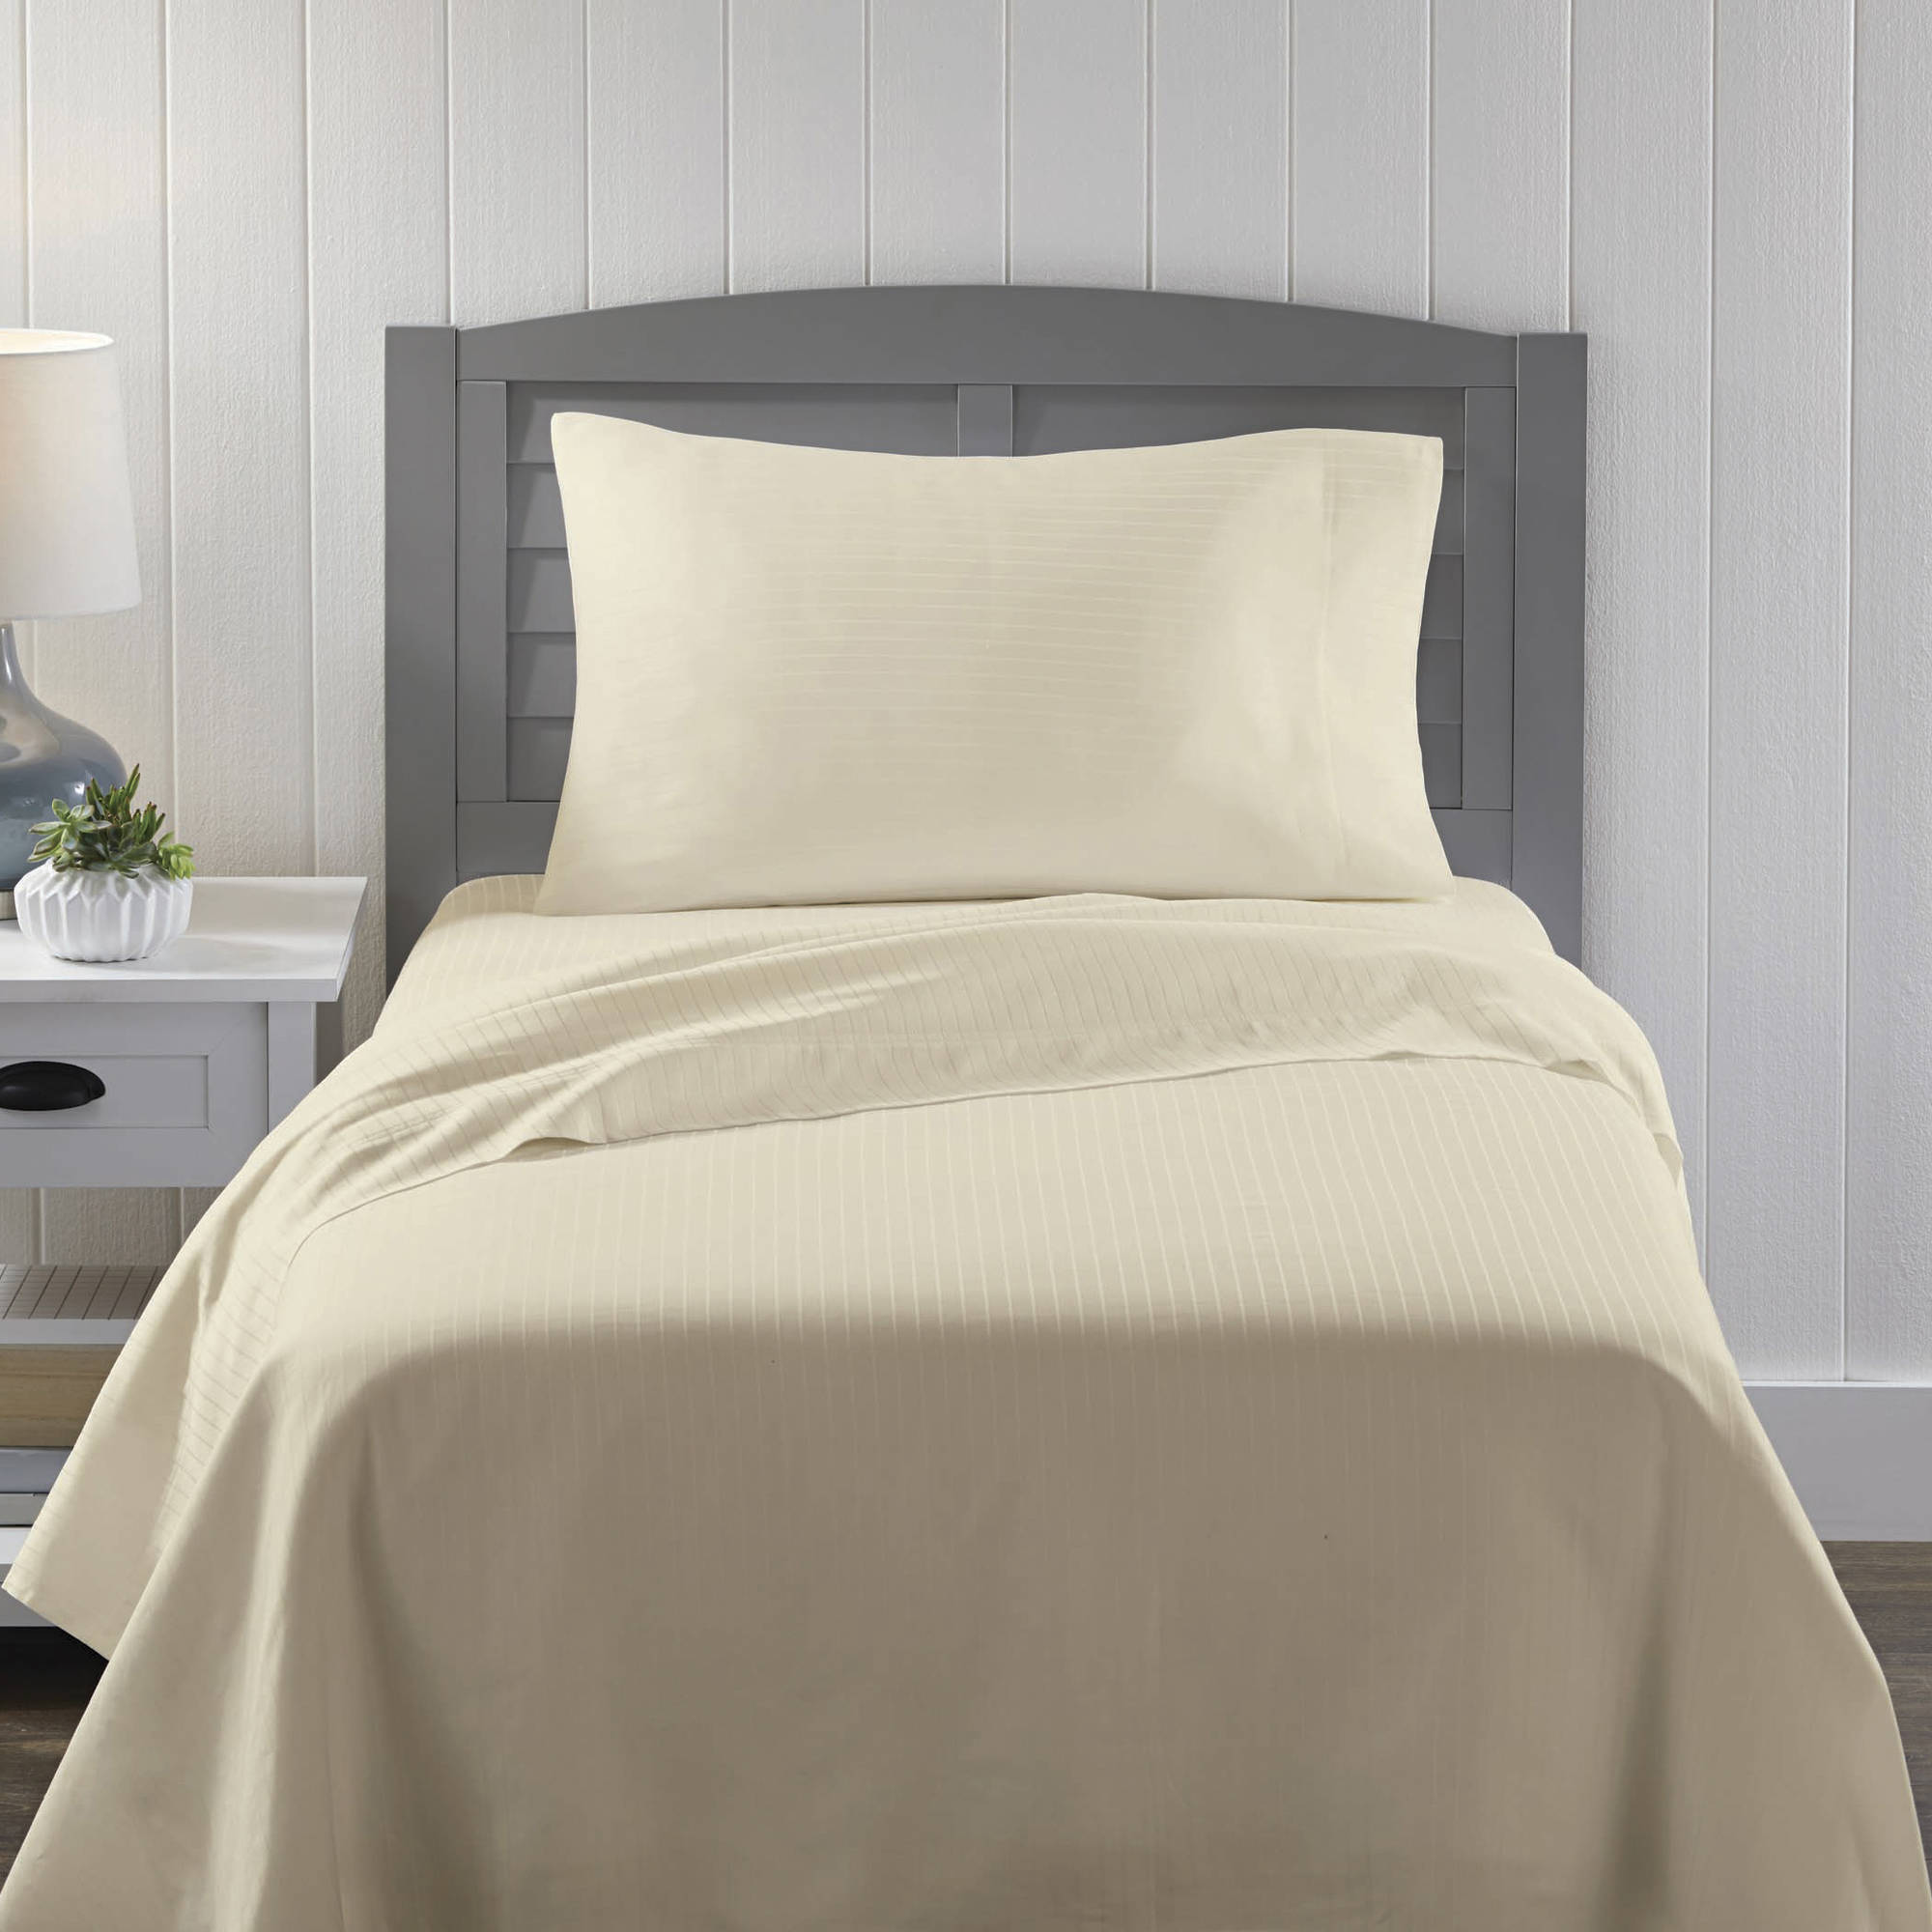 Better Homes and Gardens 300-Thread-Count 100% Cotton Sheet Set